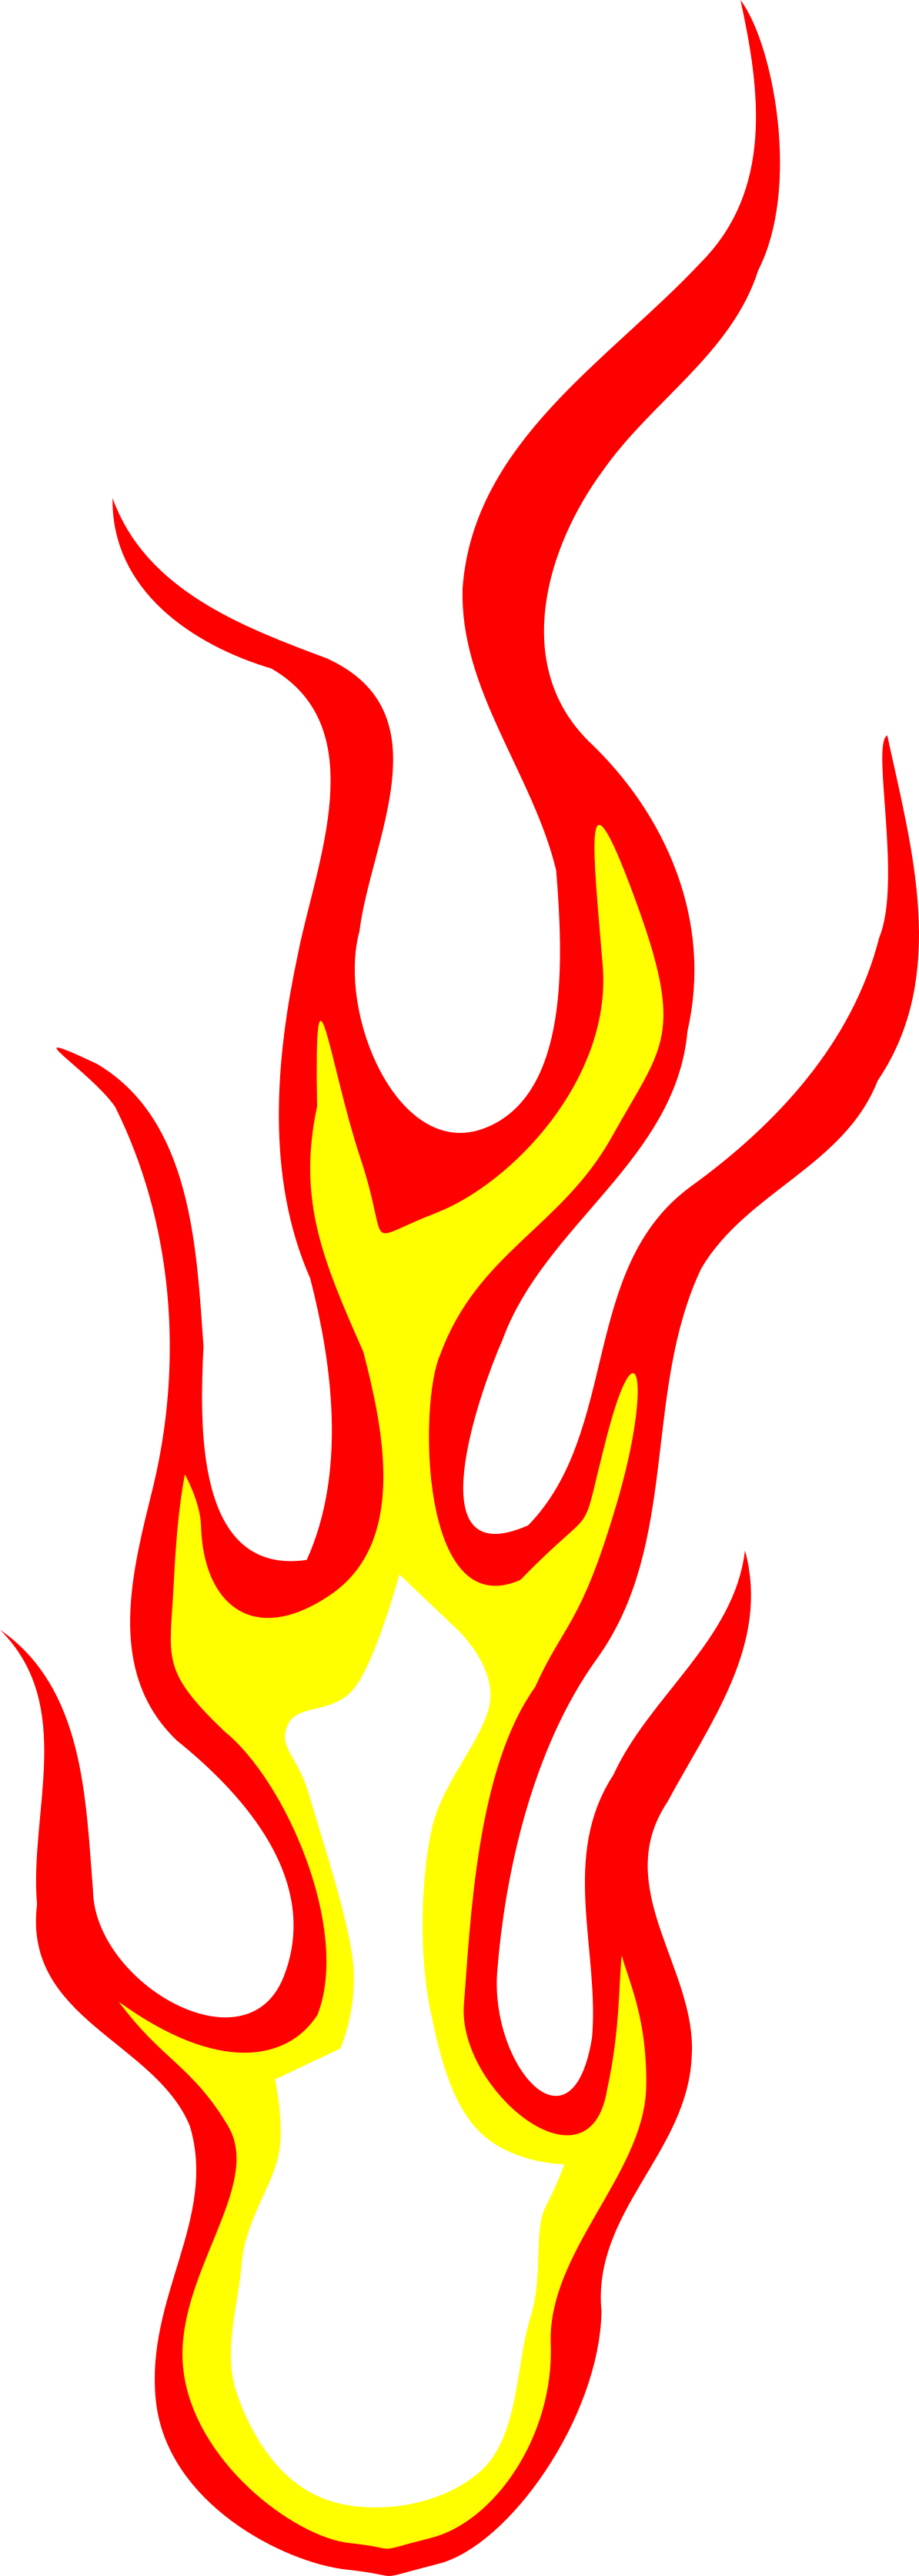 5 Fire Flame Clipart (PNG Transparent).